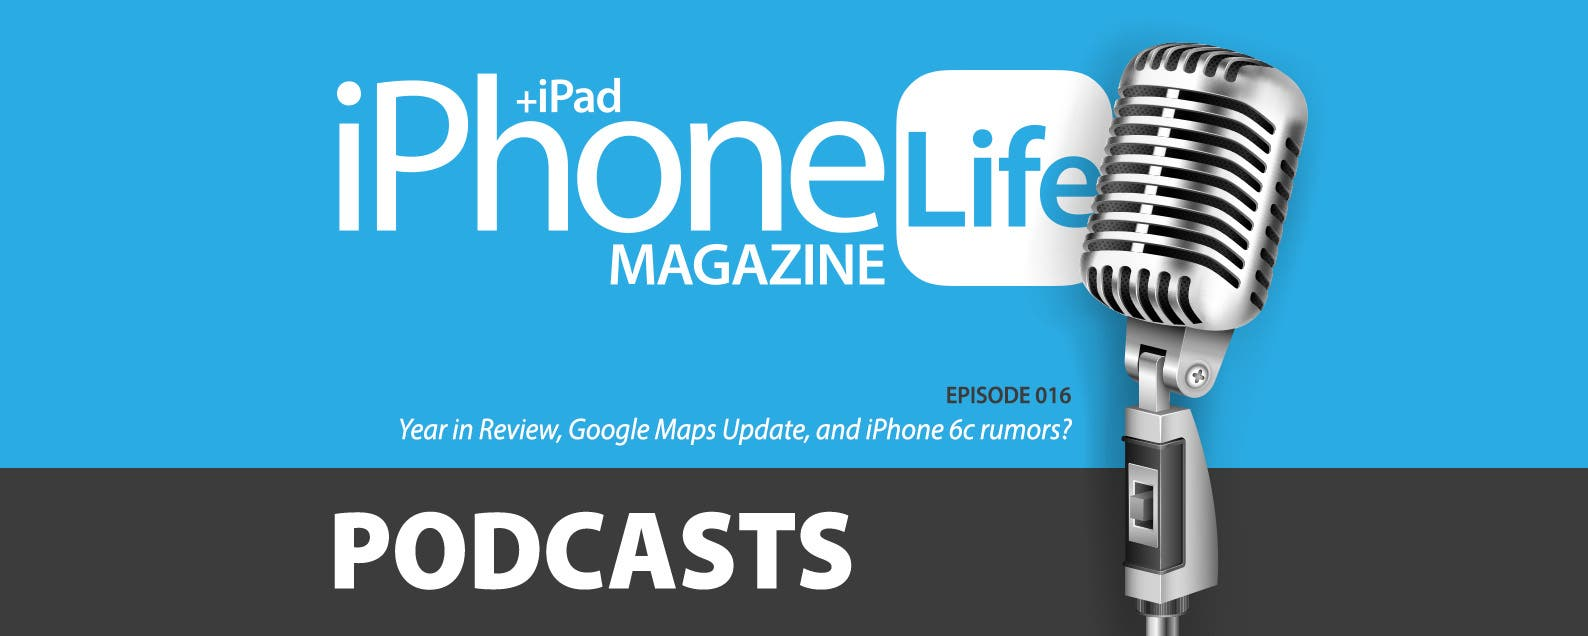 Year in Review, Google Maps Update, and iPhone 6c rumors